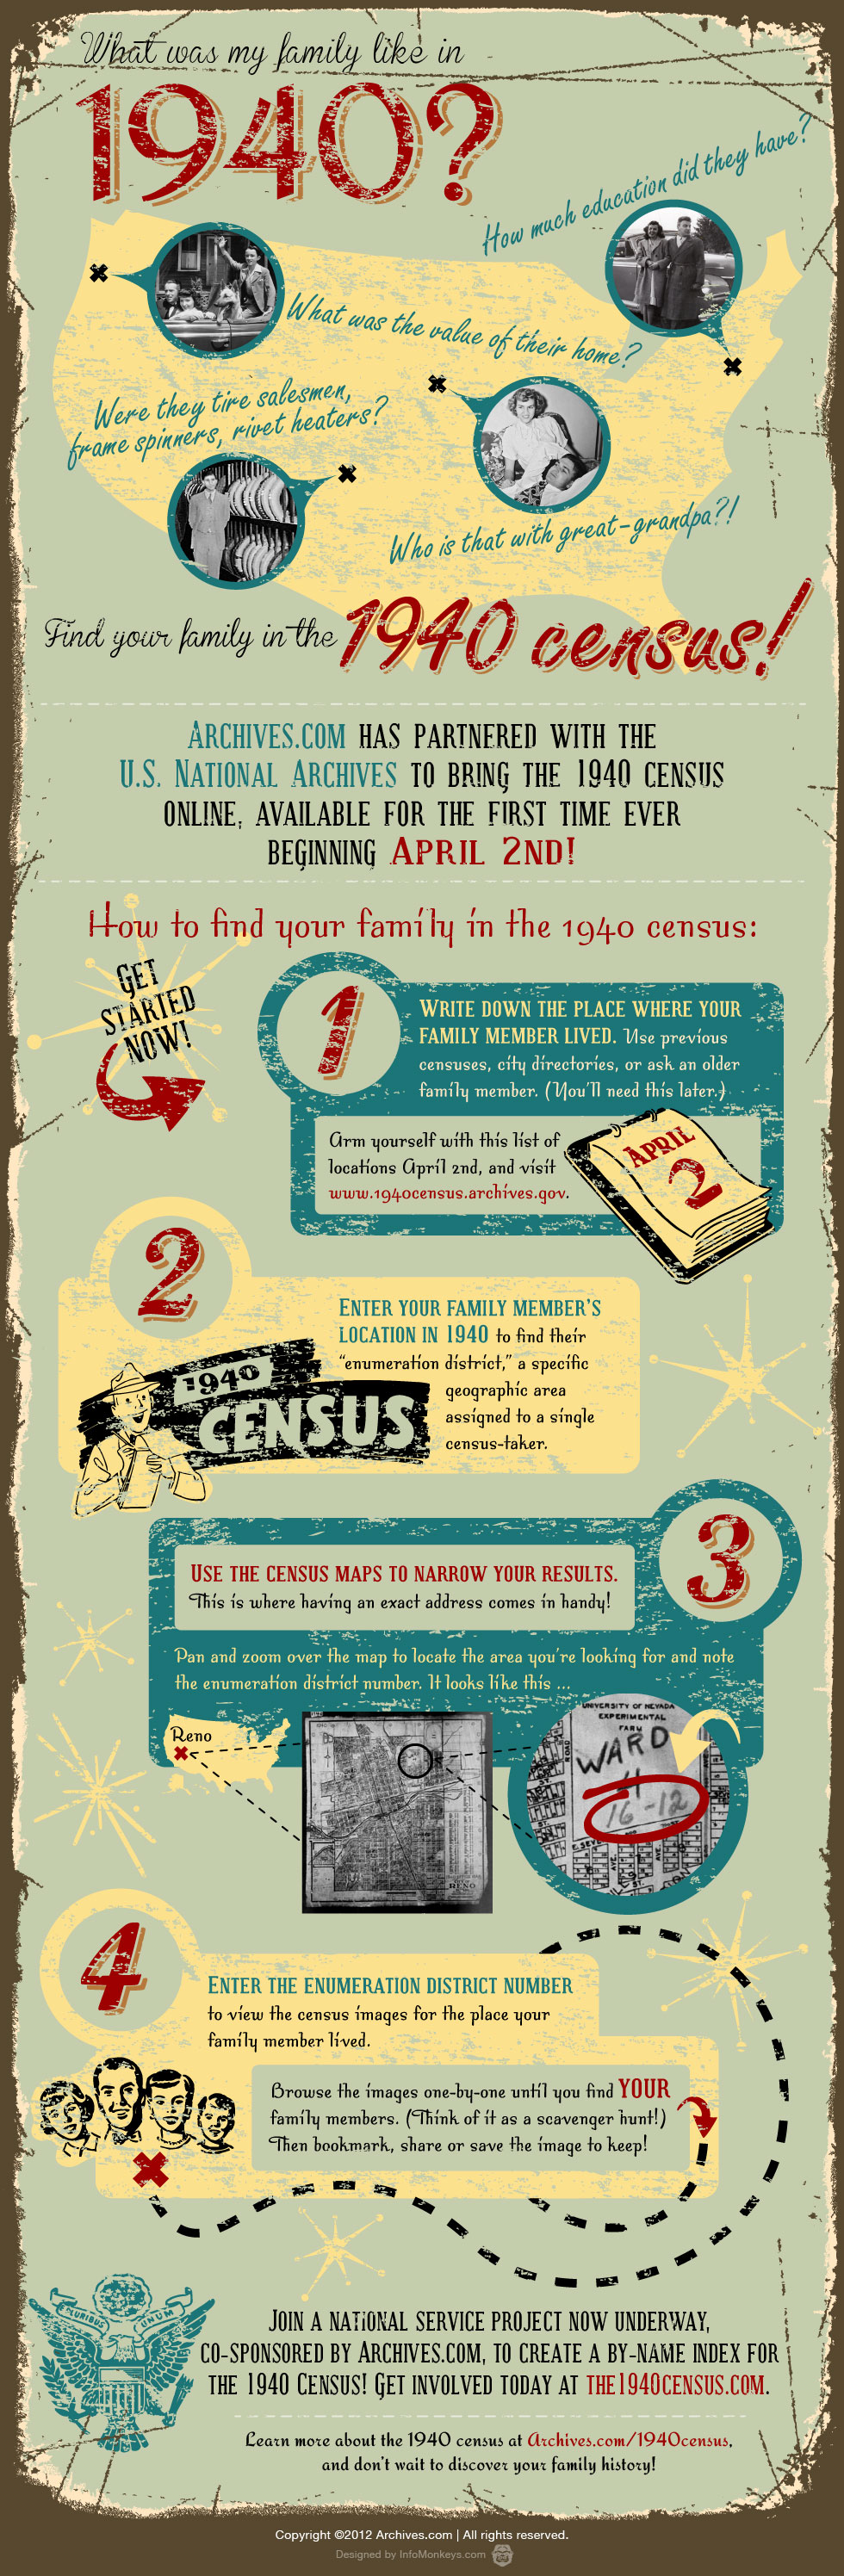 Genealogy Just Got More Exciting! The 1940 Census is Here (4/3/12)